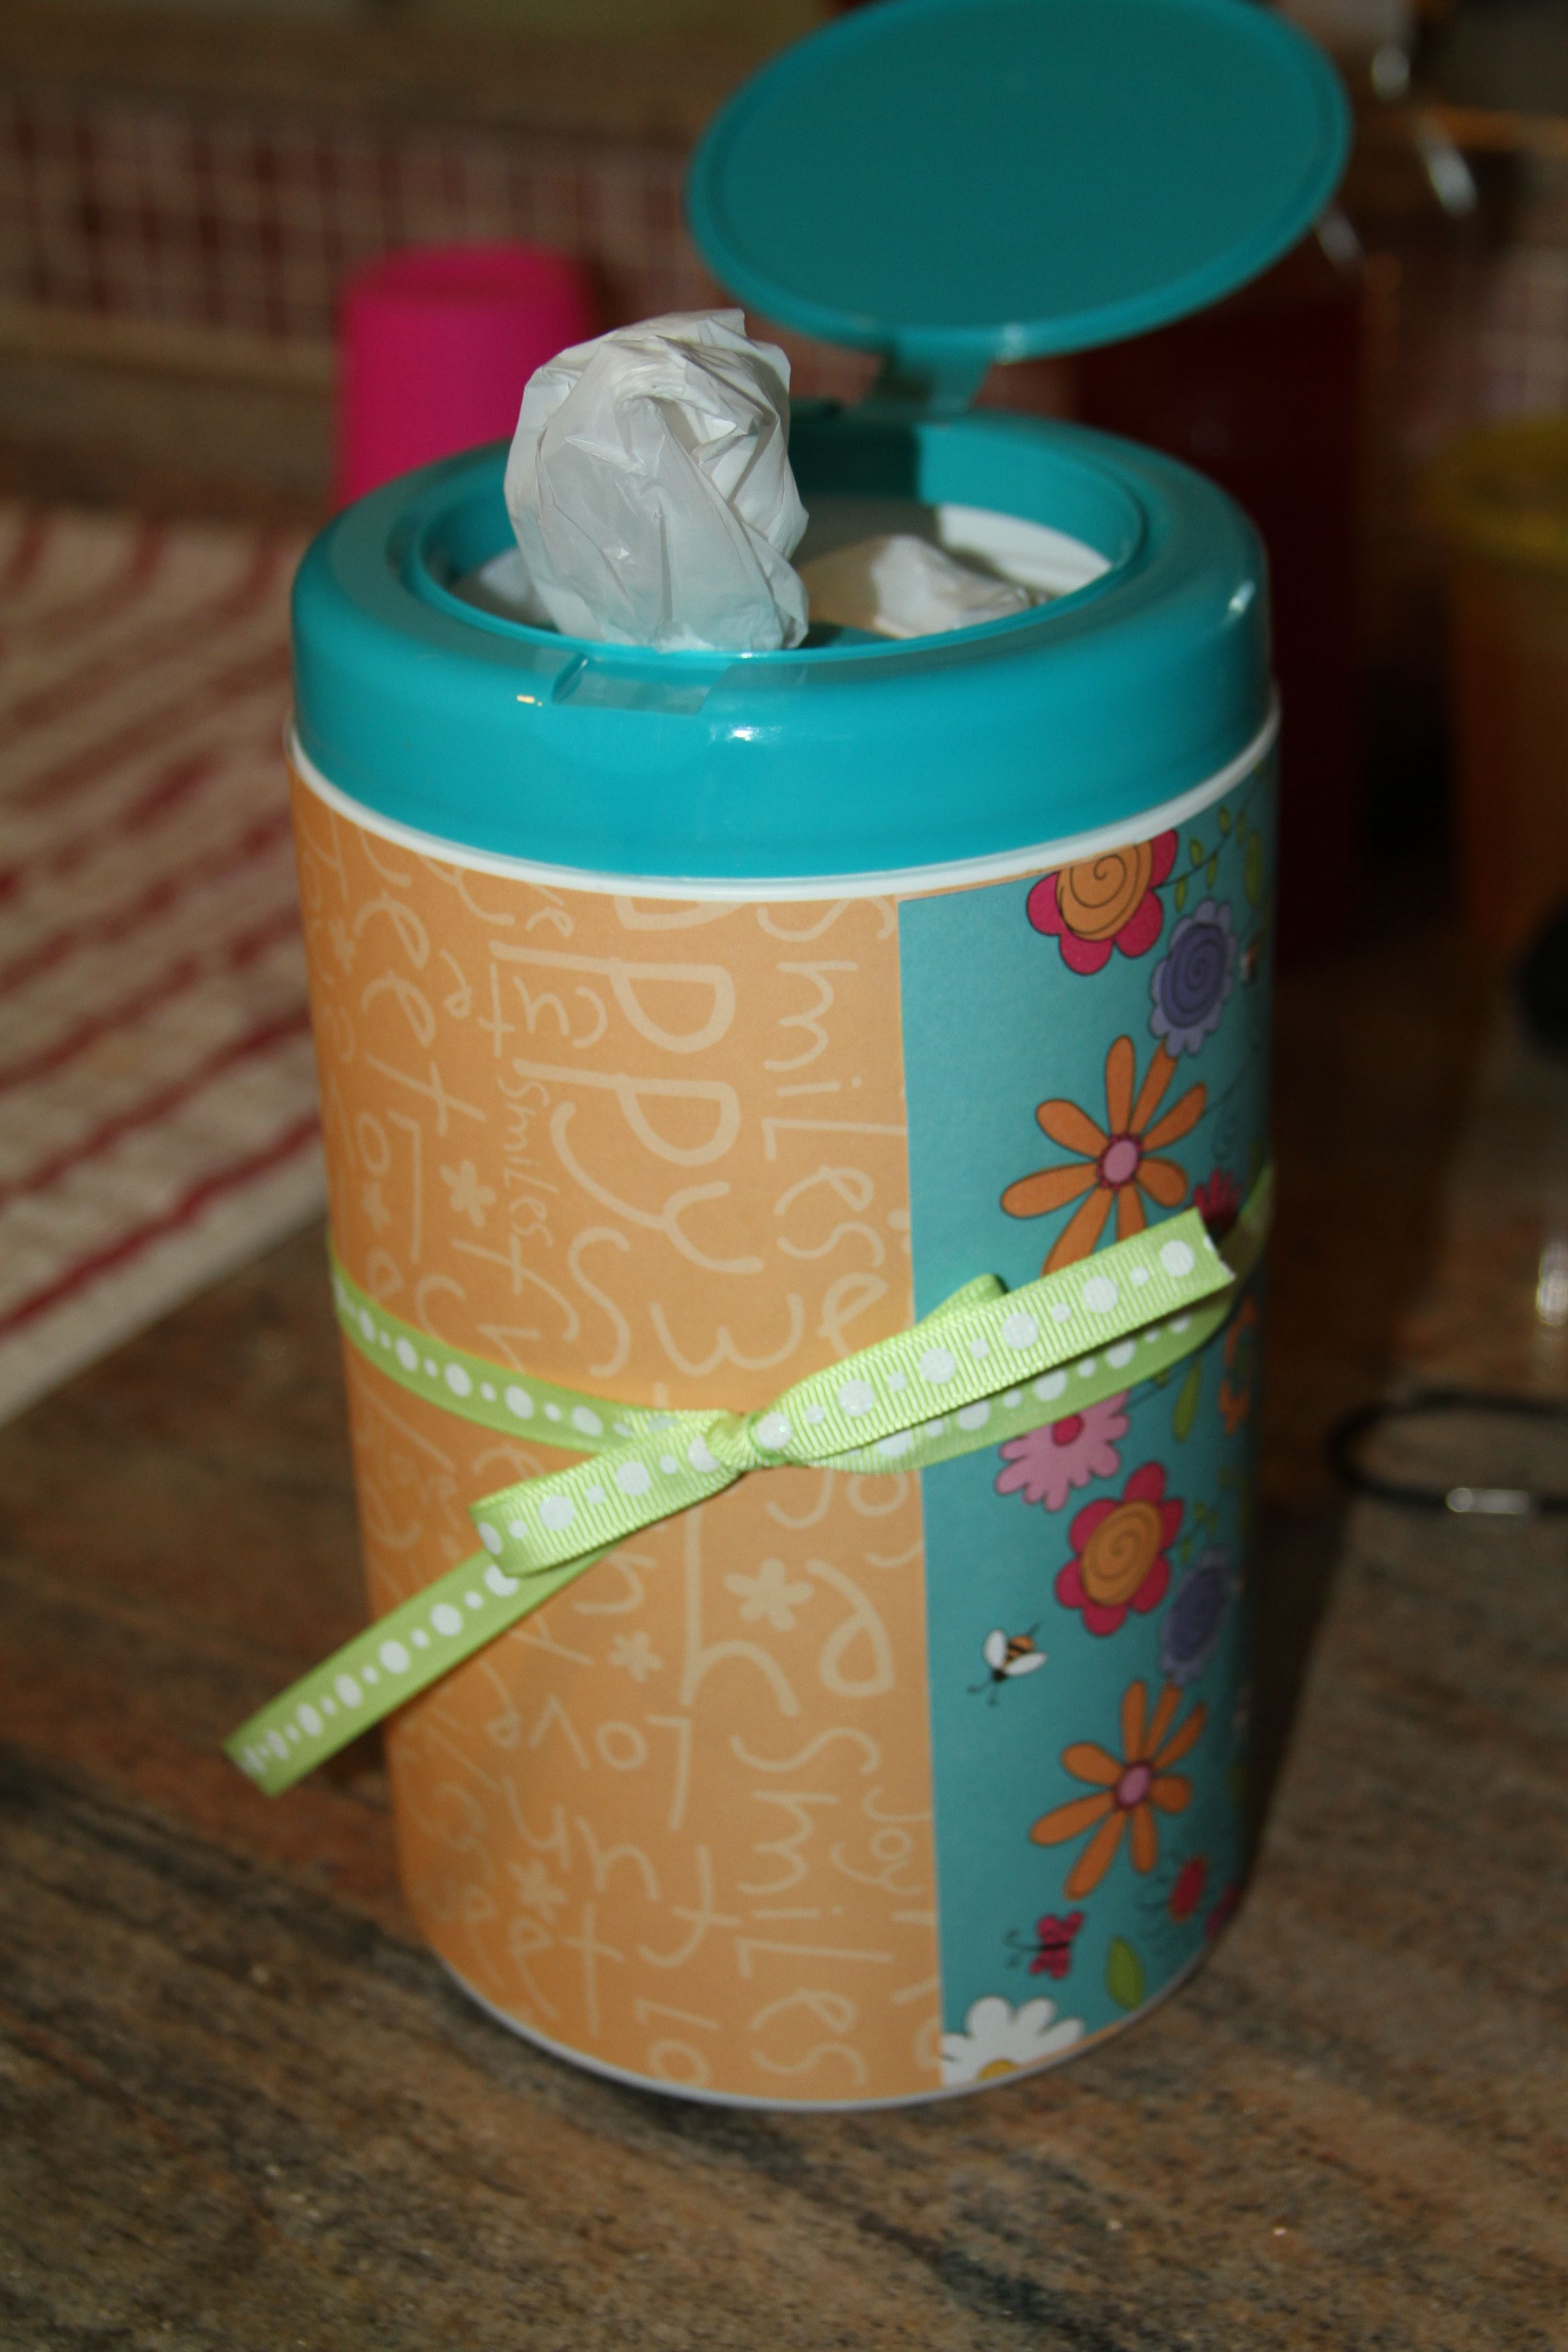 Recycle lysol wipe container to hold plastic grocery bags. I love this idea. You could use empty baby wipes containers too!